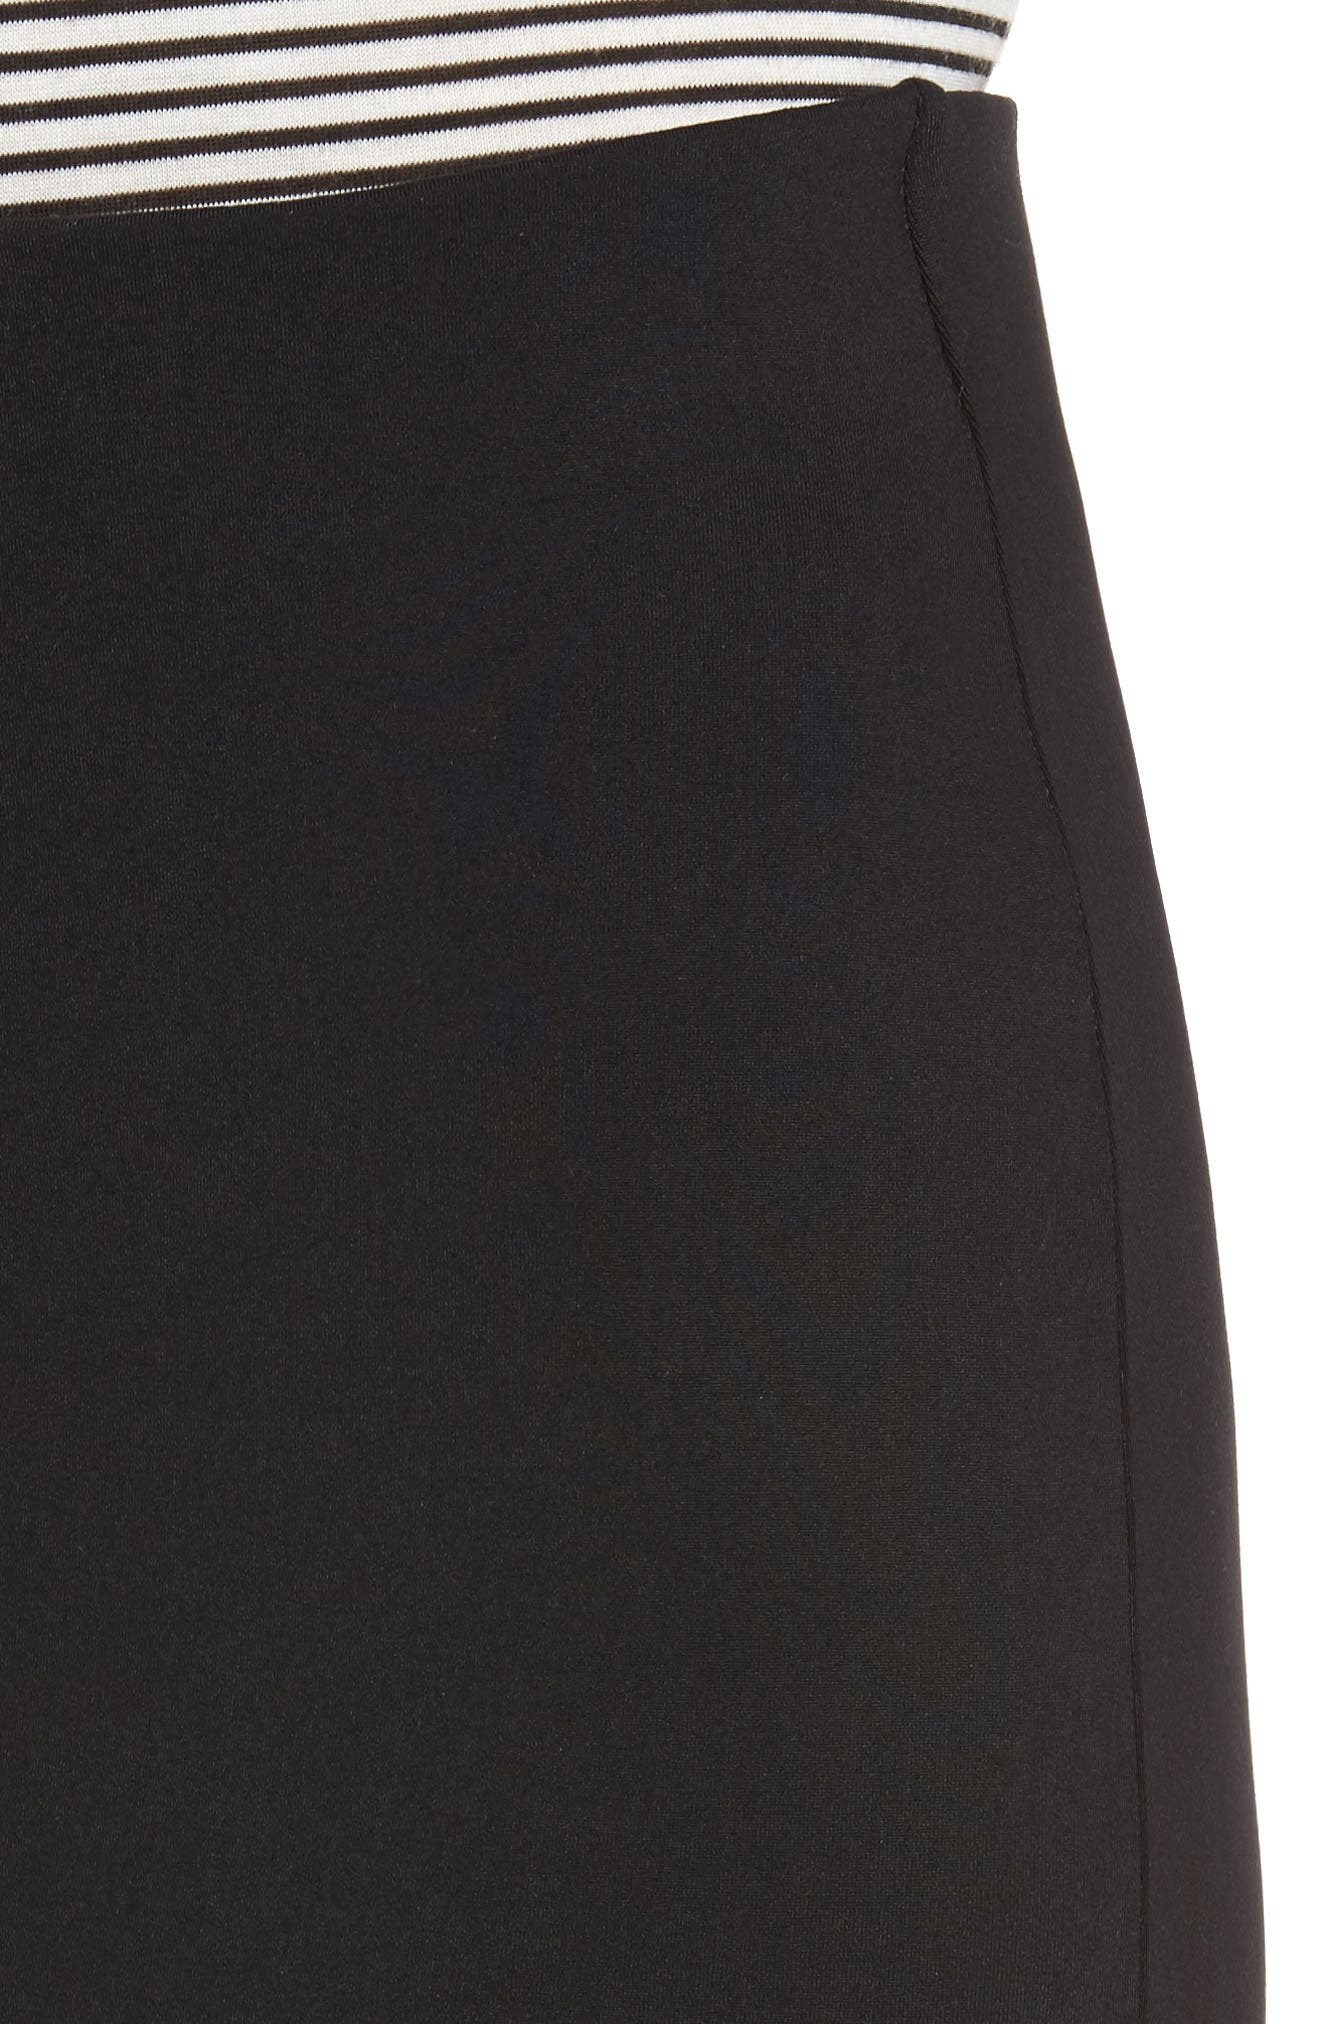 Tube High Rise Pencil Skirt,                             Alternate thumbnail 4, color,                             BLACK